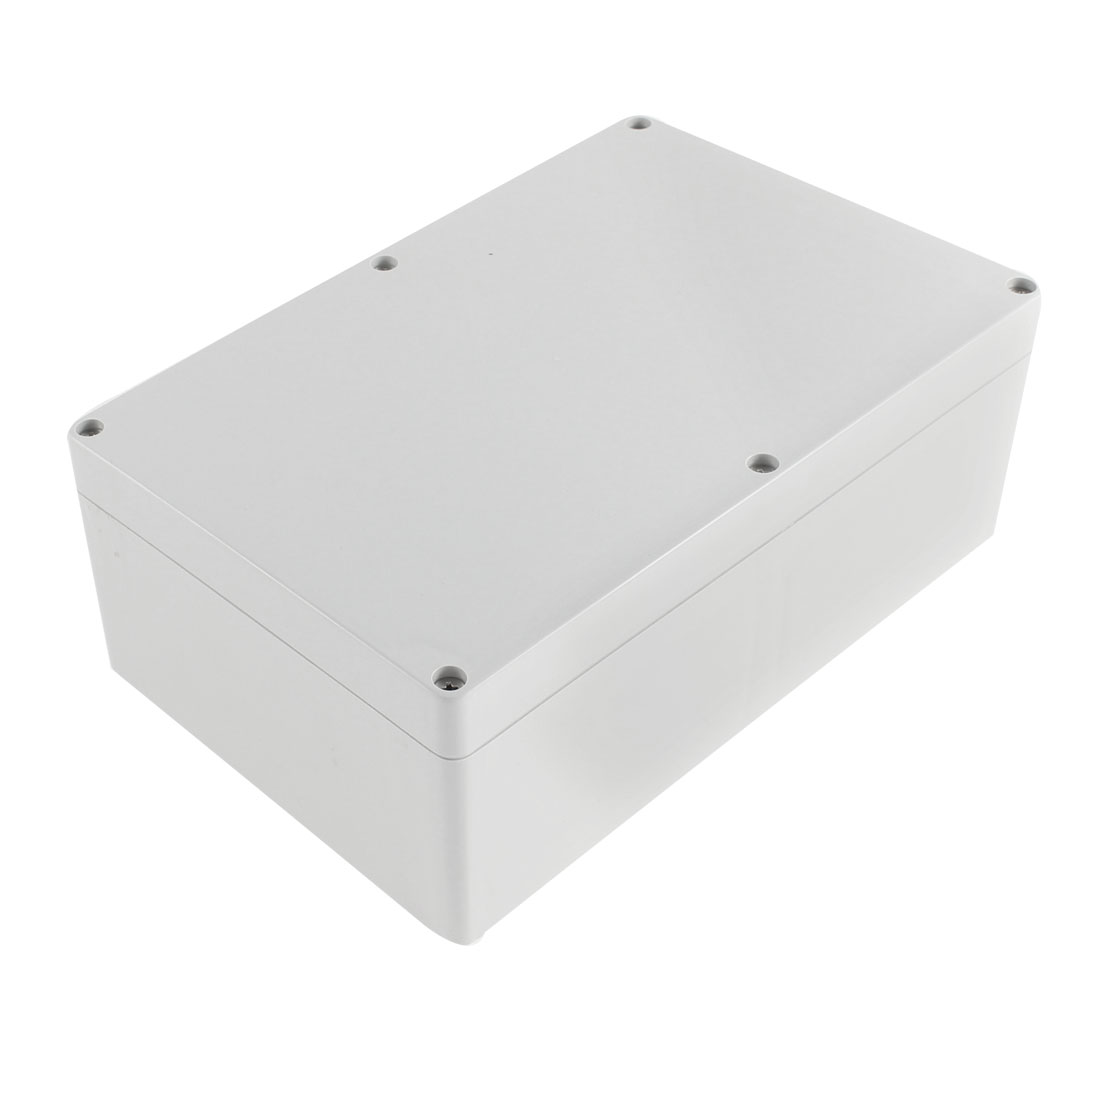 Dustproof IP65 Plastic Electronic Project Junction Box Enclosure Case 230 x 150 x 82mm